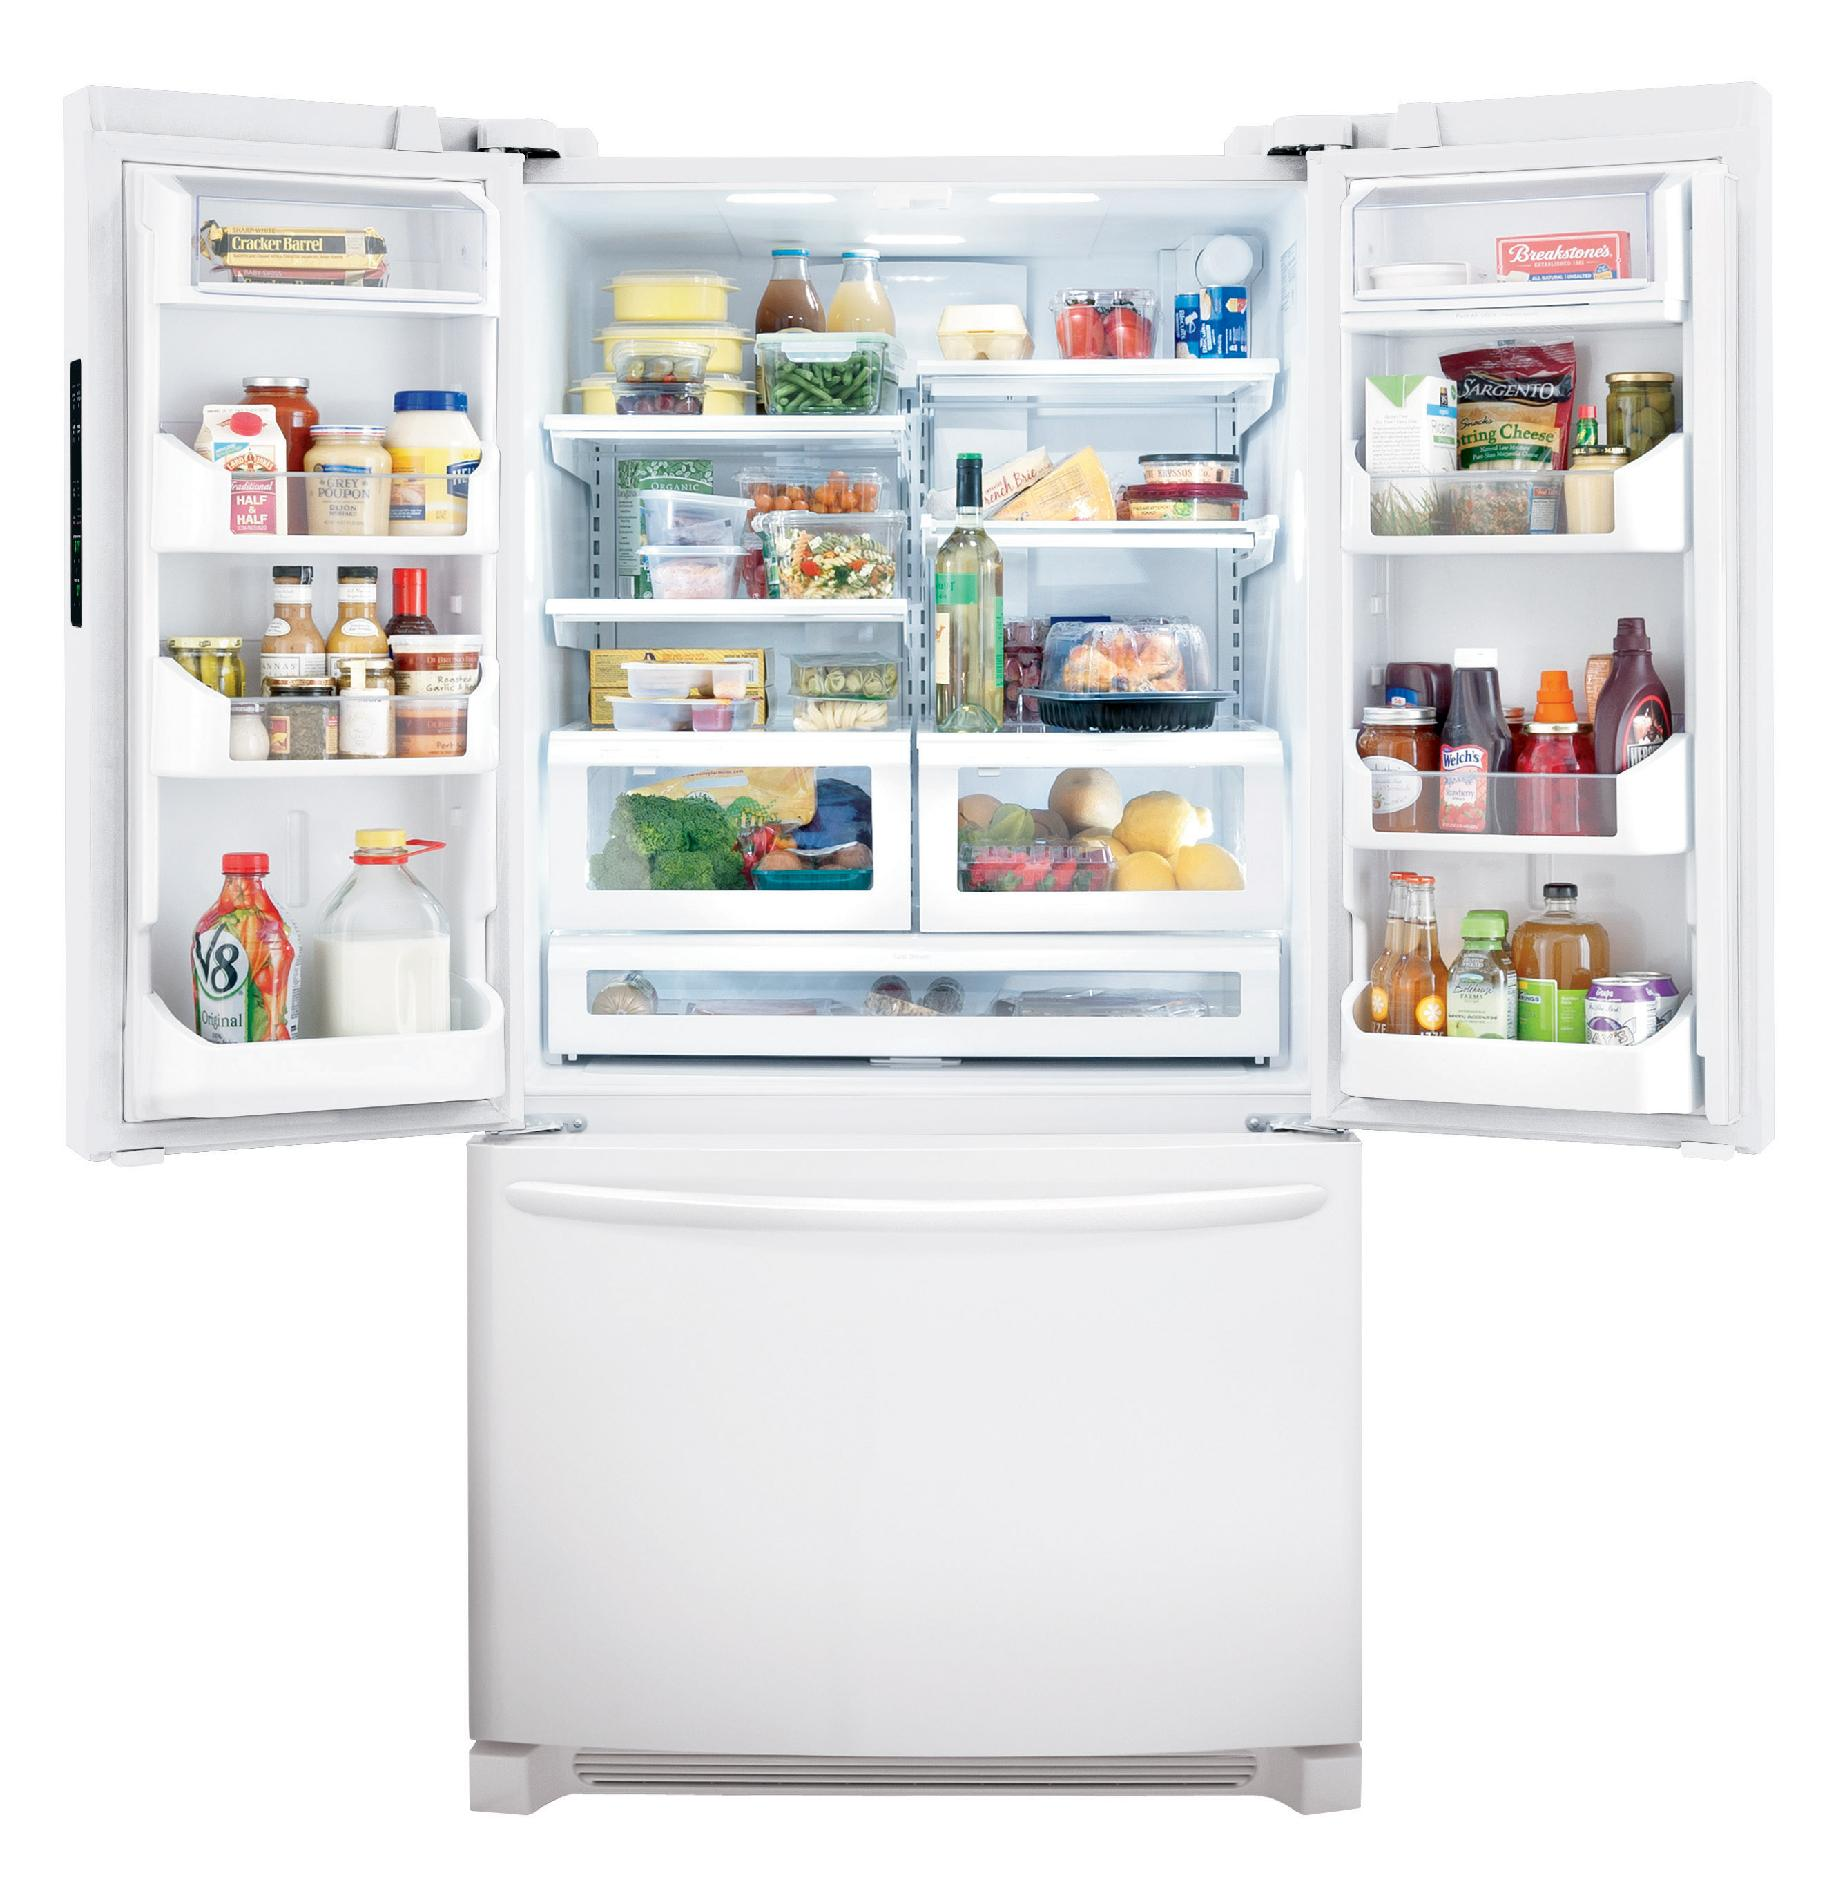 Frigidaire Gallery FGHN2866PP Gallery 27.8 cu. ft. French Door Refrigerator - Pearl White